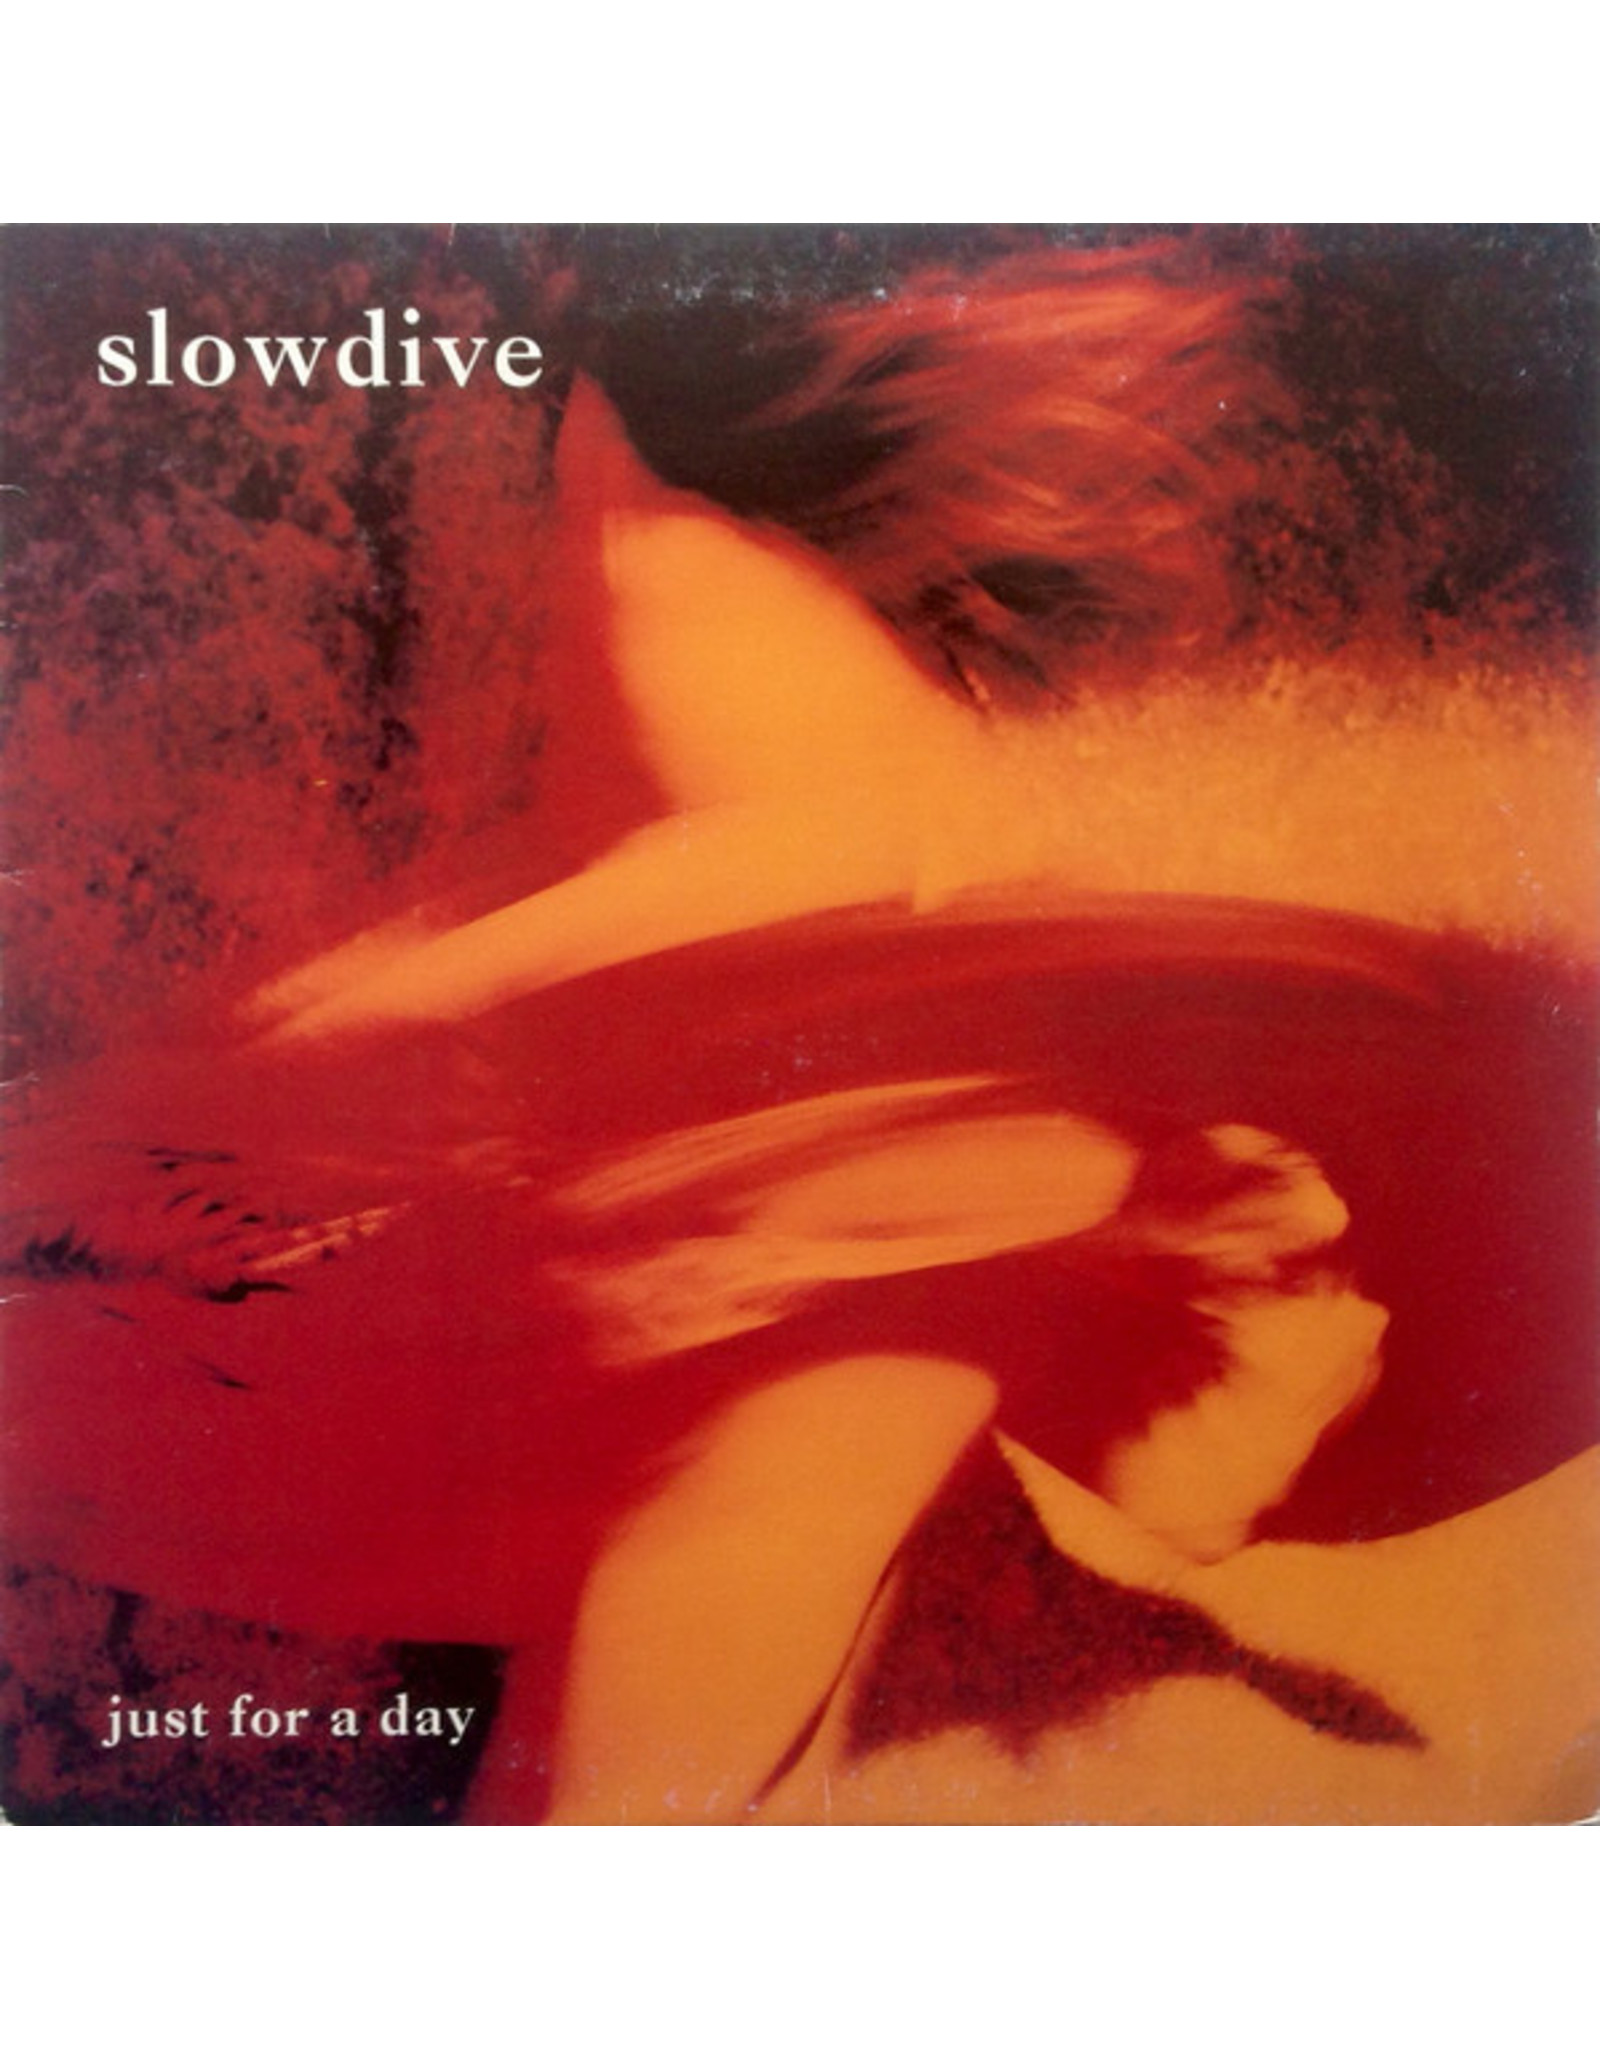 New Vinyl Slowdive - Just For A Day LP